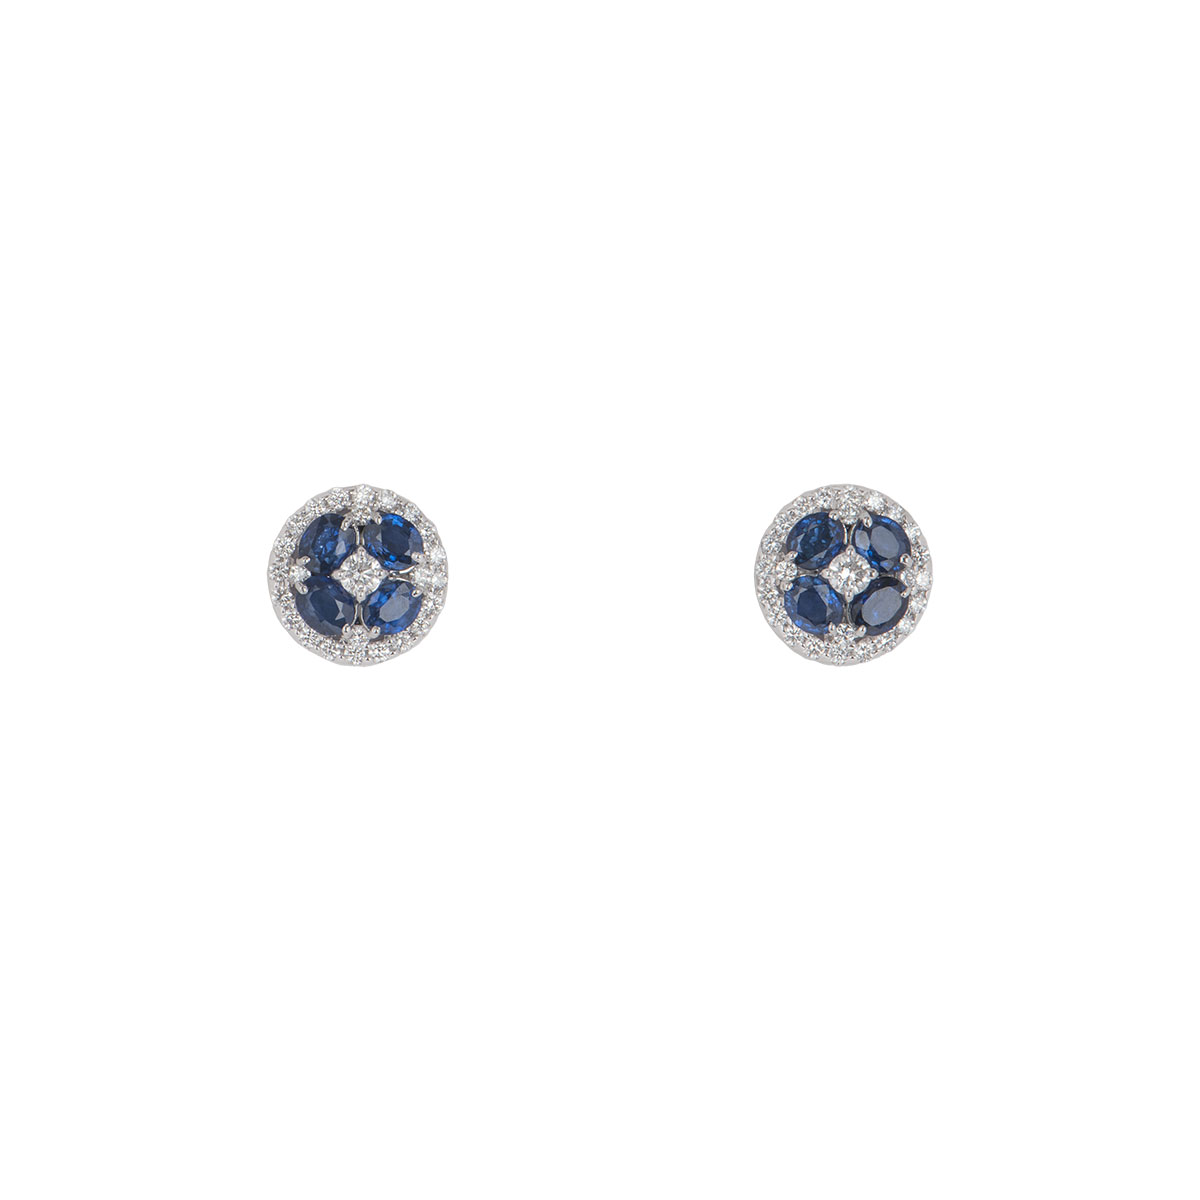 White Gold Diamond And Sapphire Floral Earrings